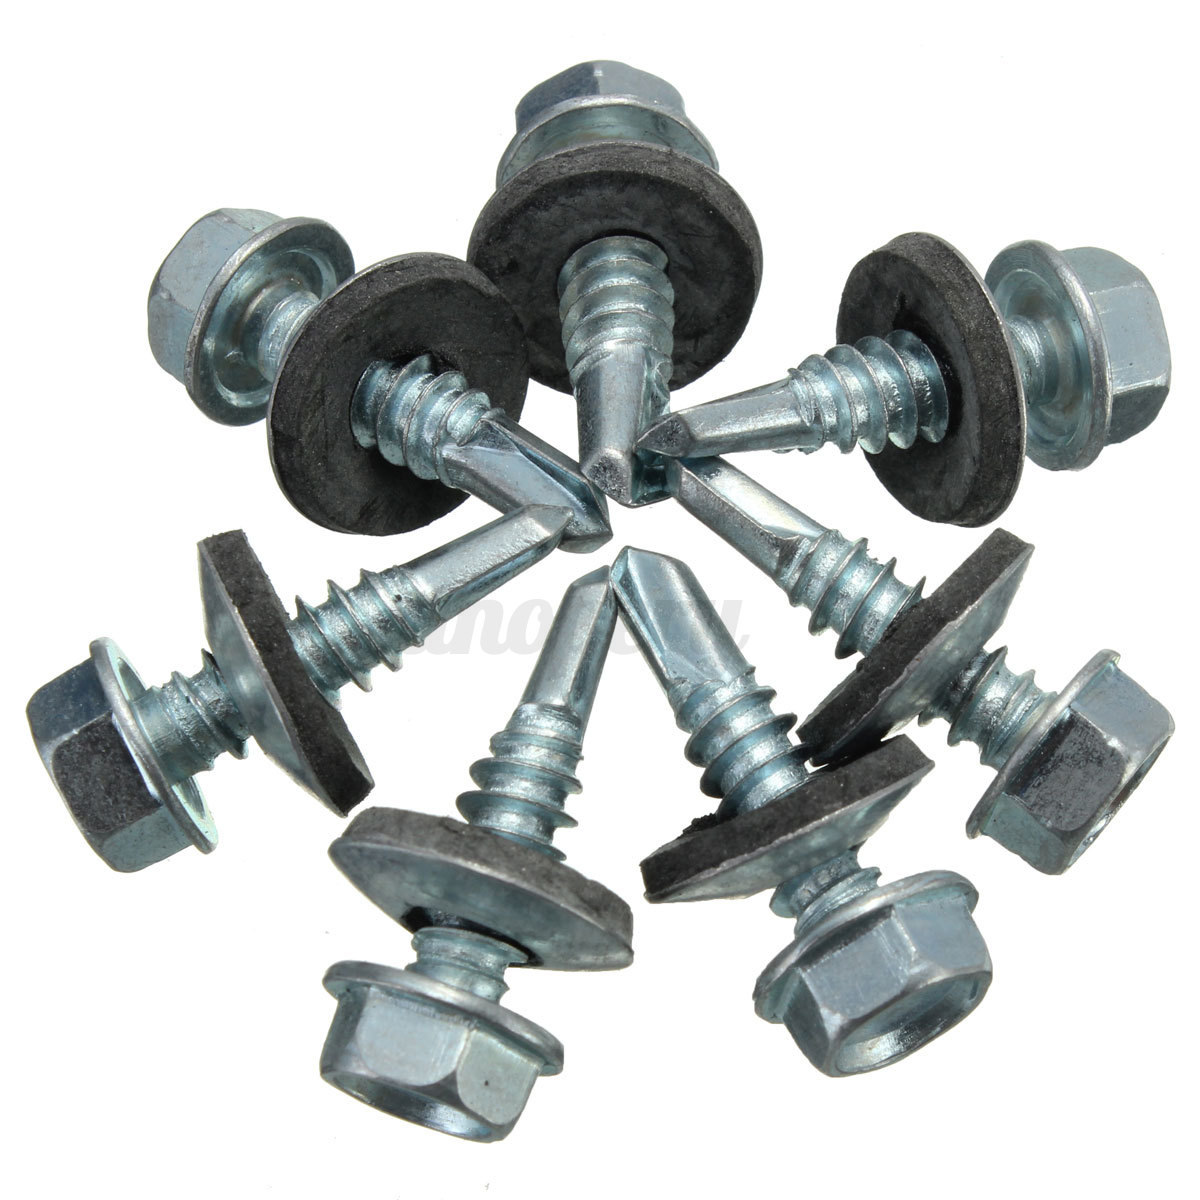 20pcs Metal Self Tapping Screws Stitching Bolt With Rubber